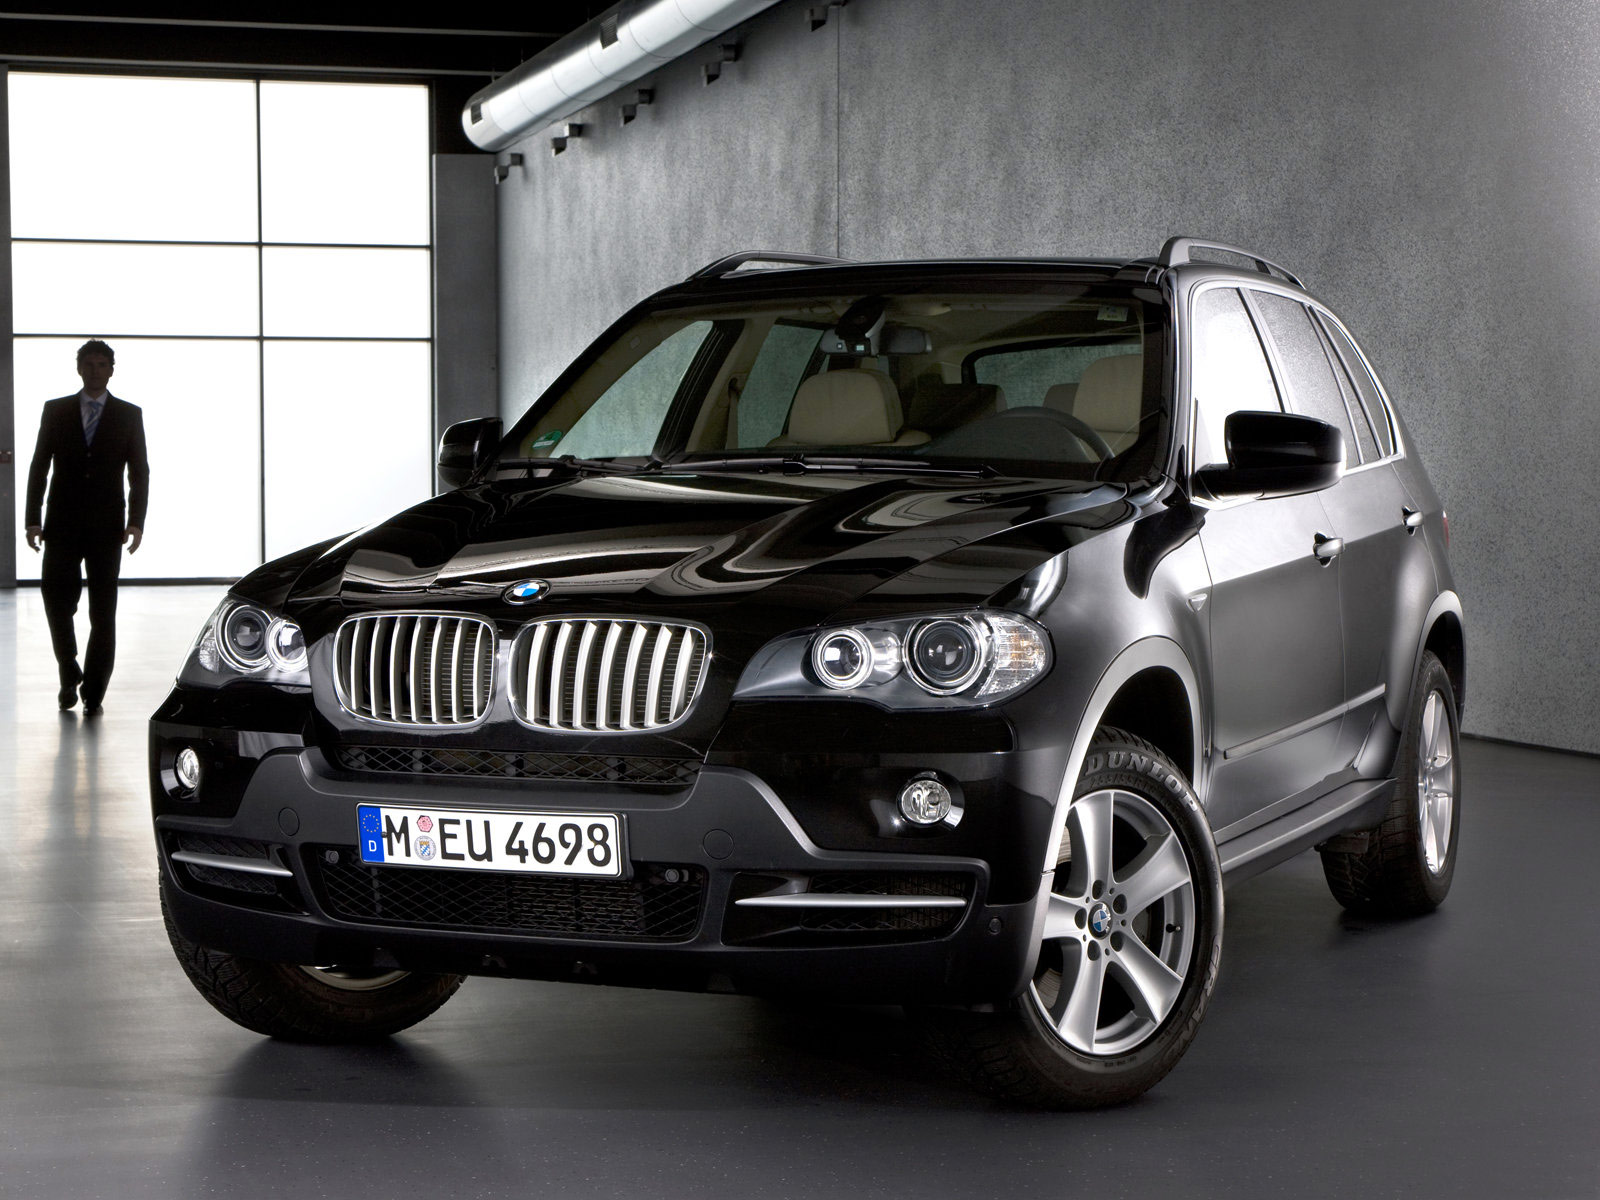 2009 bmw x5 security plus car accident lawyers info. Black Bedroom Furniture Sets. Home Design Ideas